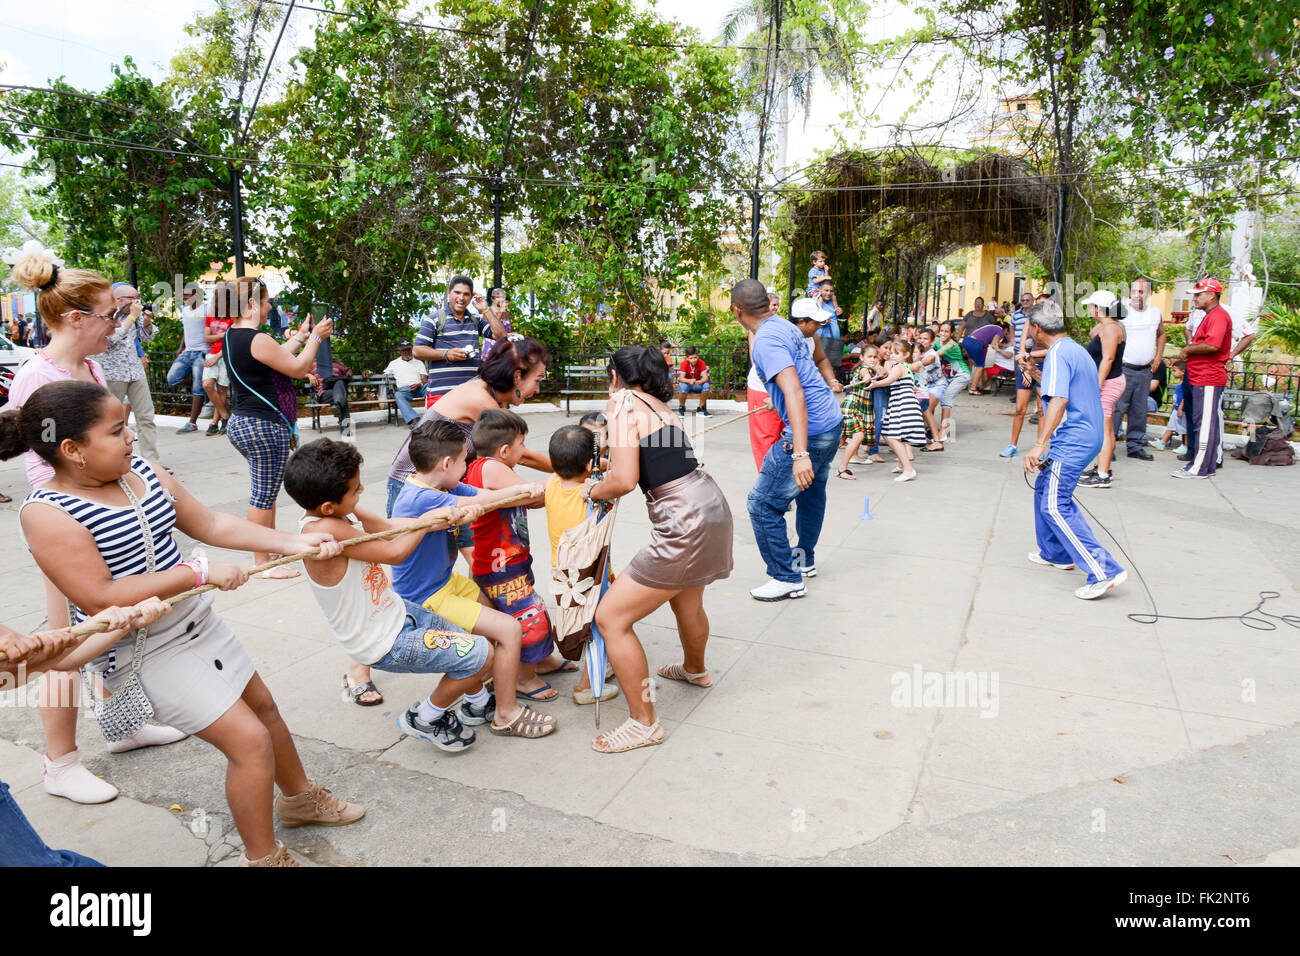 Trinidad, Cuba - 9 january 2016: elementary school children playing with the supervision of the teachers in the - Stock Image